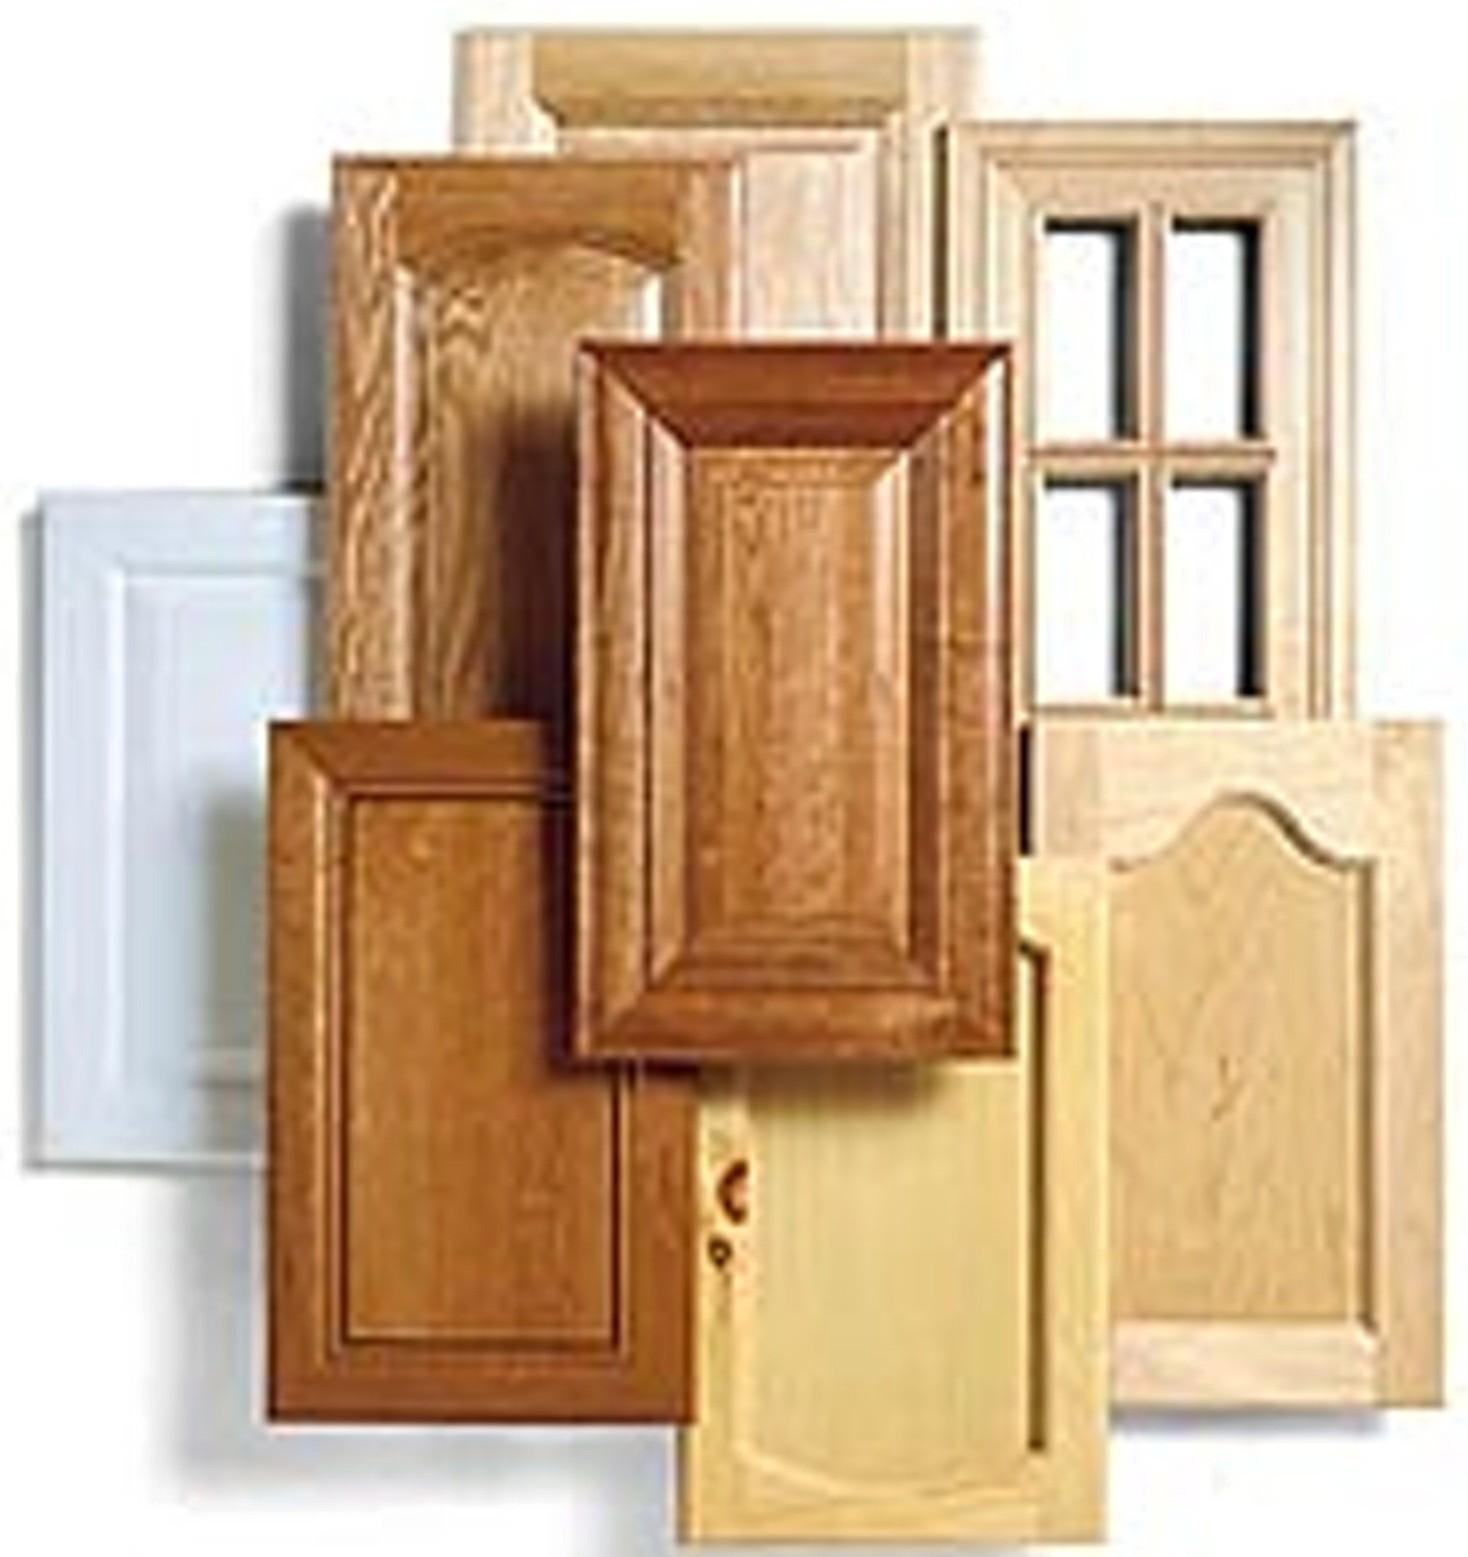 Buying Just Kitchen Cabinet Doors